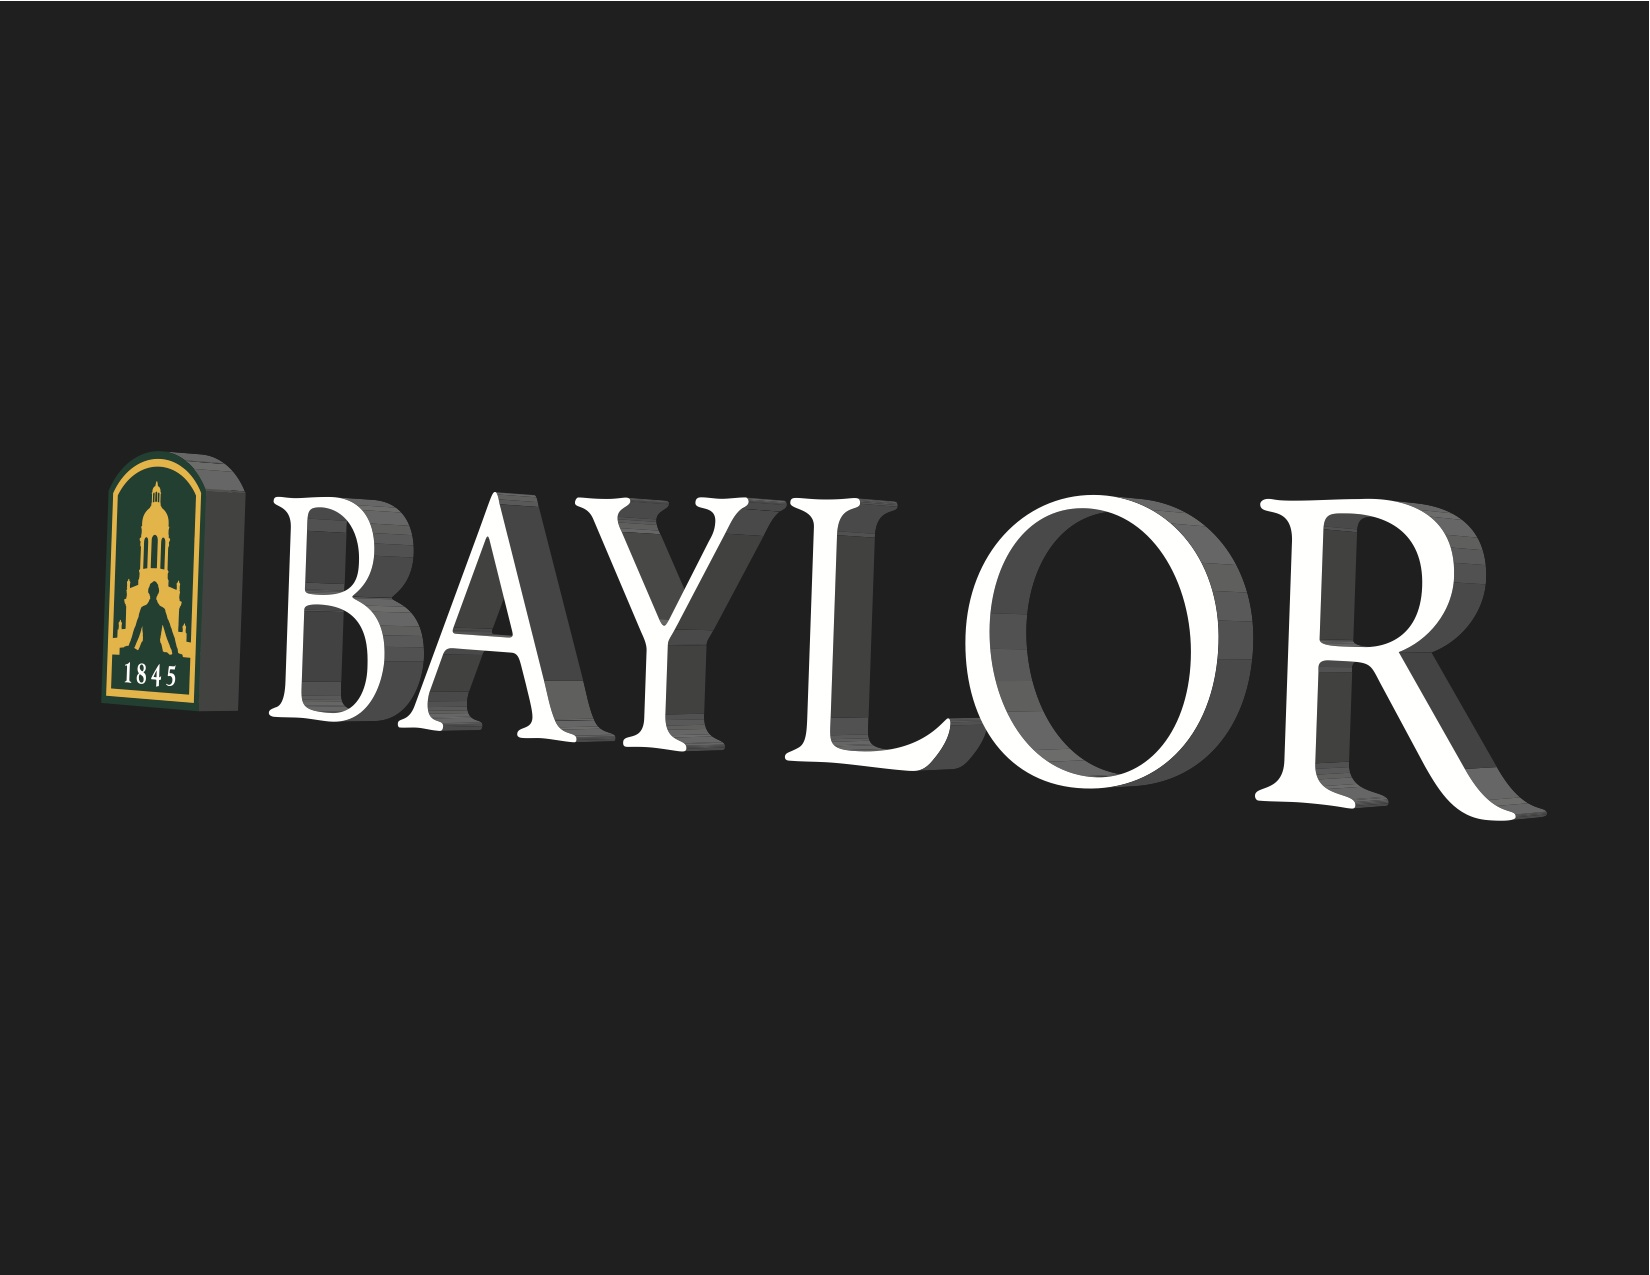 Baylor University Logo Wallpaper wwwimgkidcom   The 1650x1275